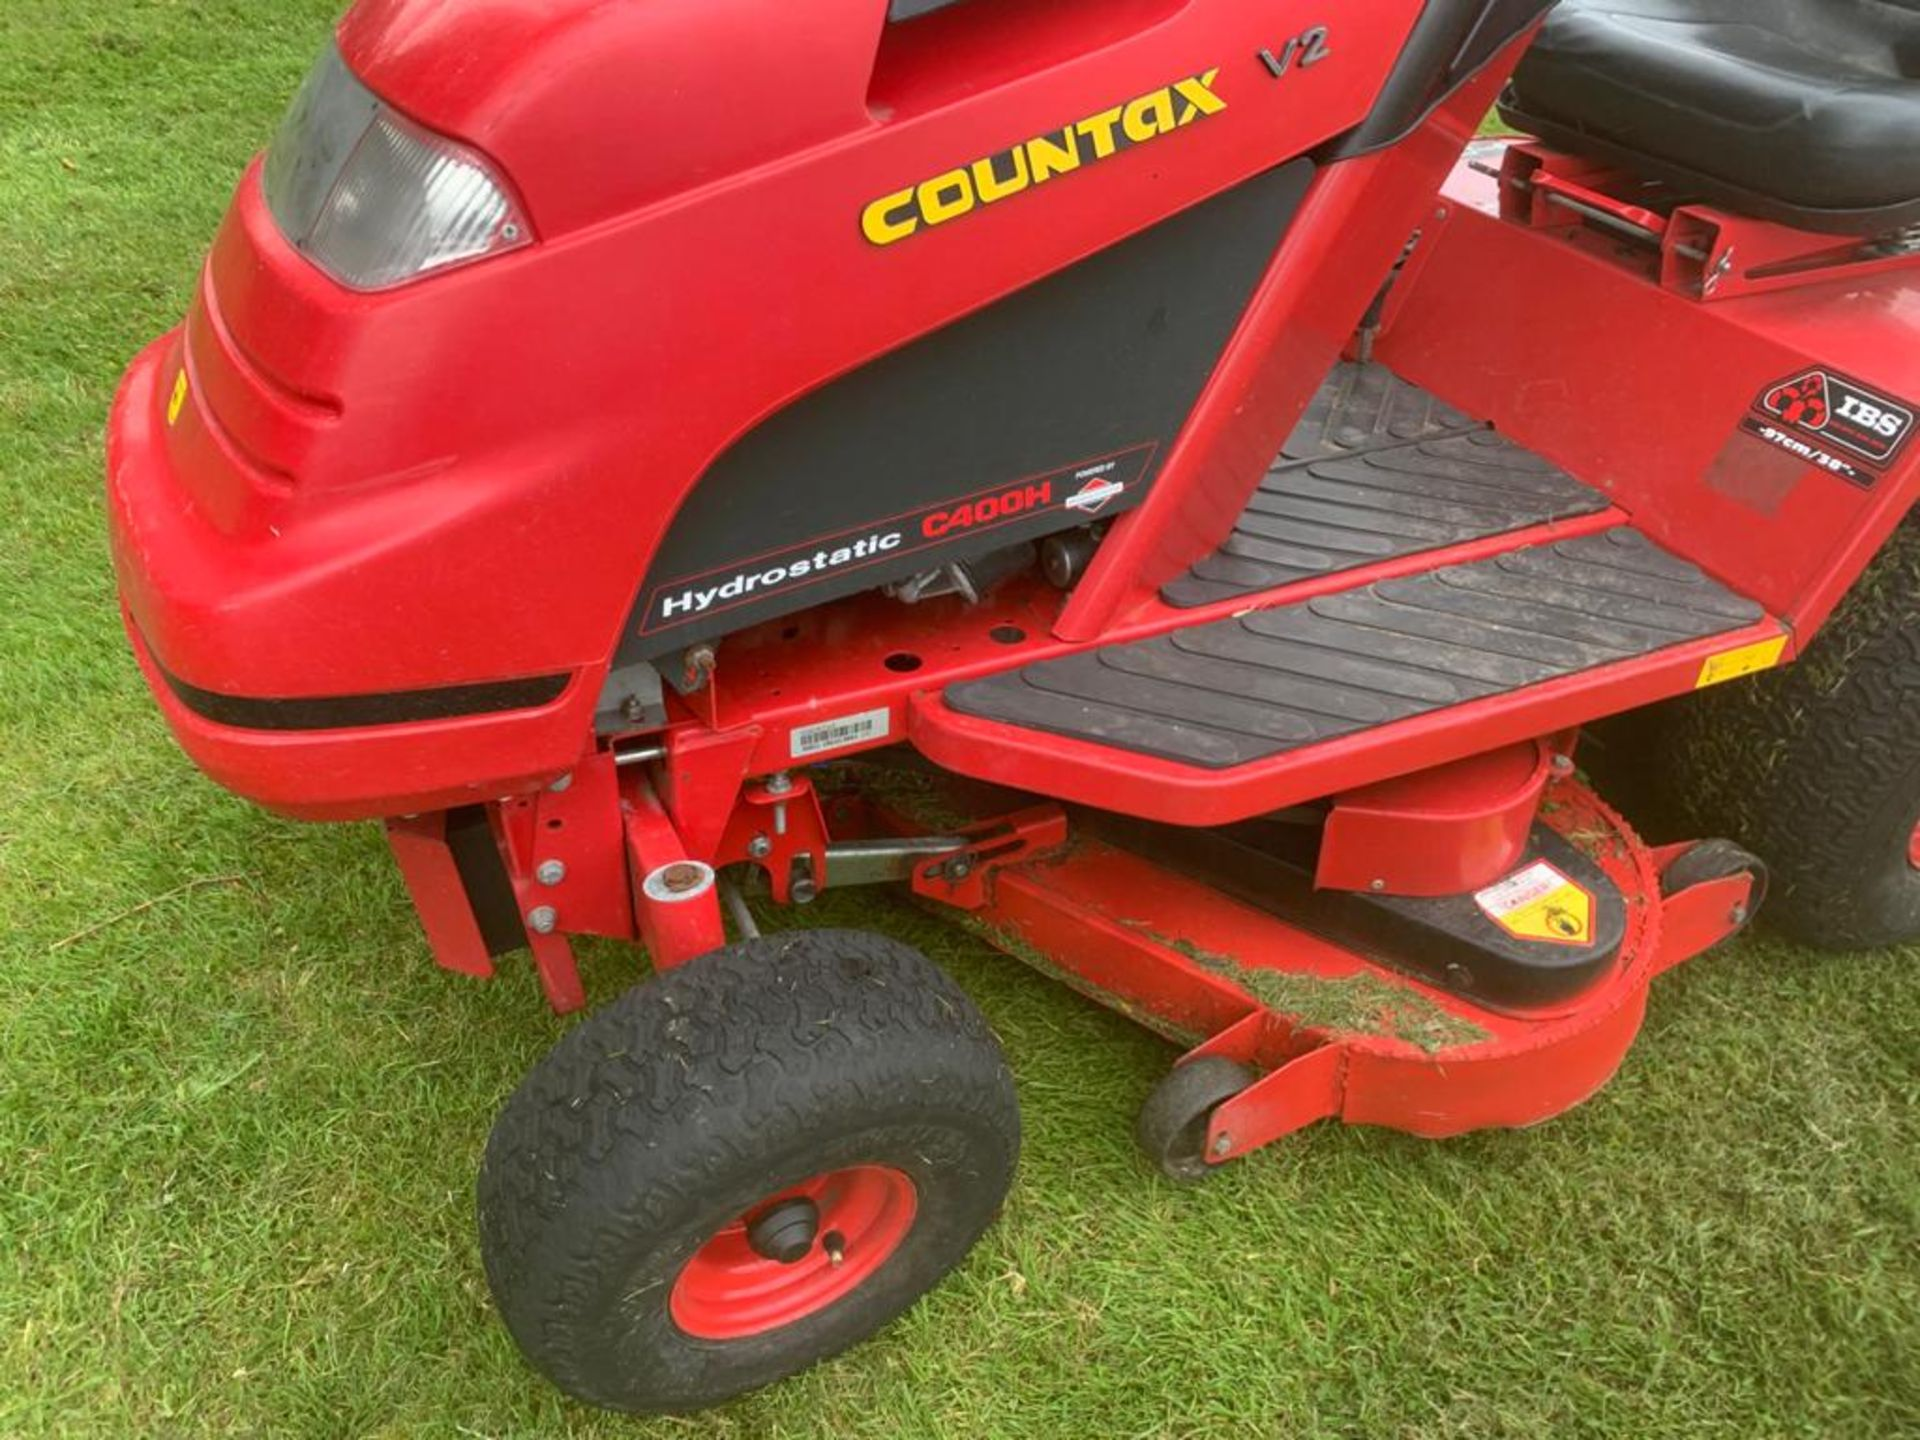 COUNTAX C400H HYDROSTATIC PETROL RIDE ON LAWN MOWER WITH SWEEPER *PLUS VAT* - Image 7 of 7